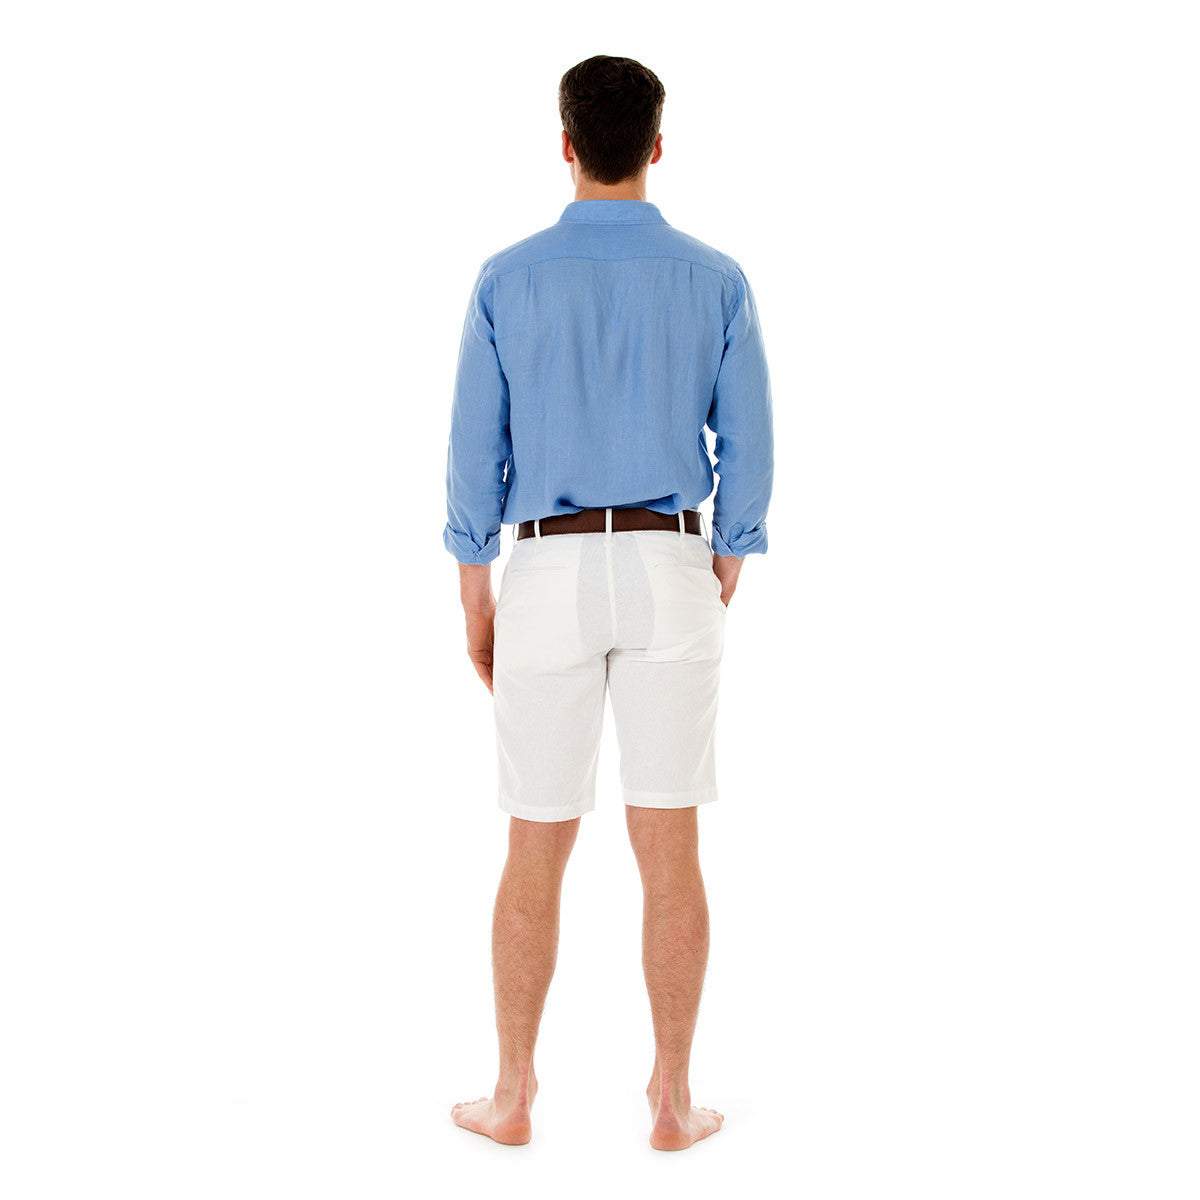 Mens Linen Shorts (White) Back